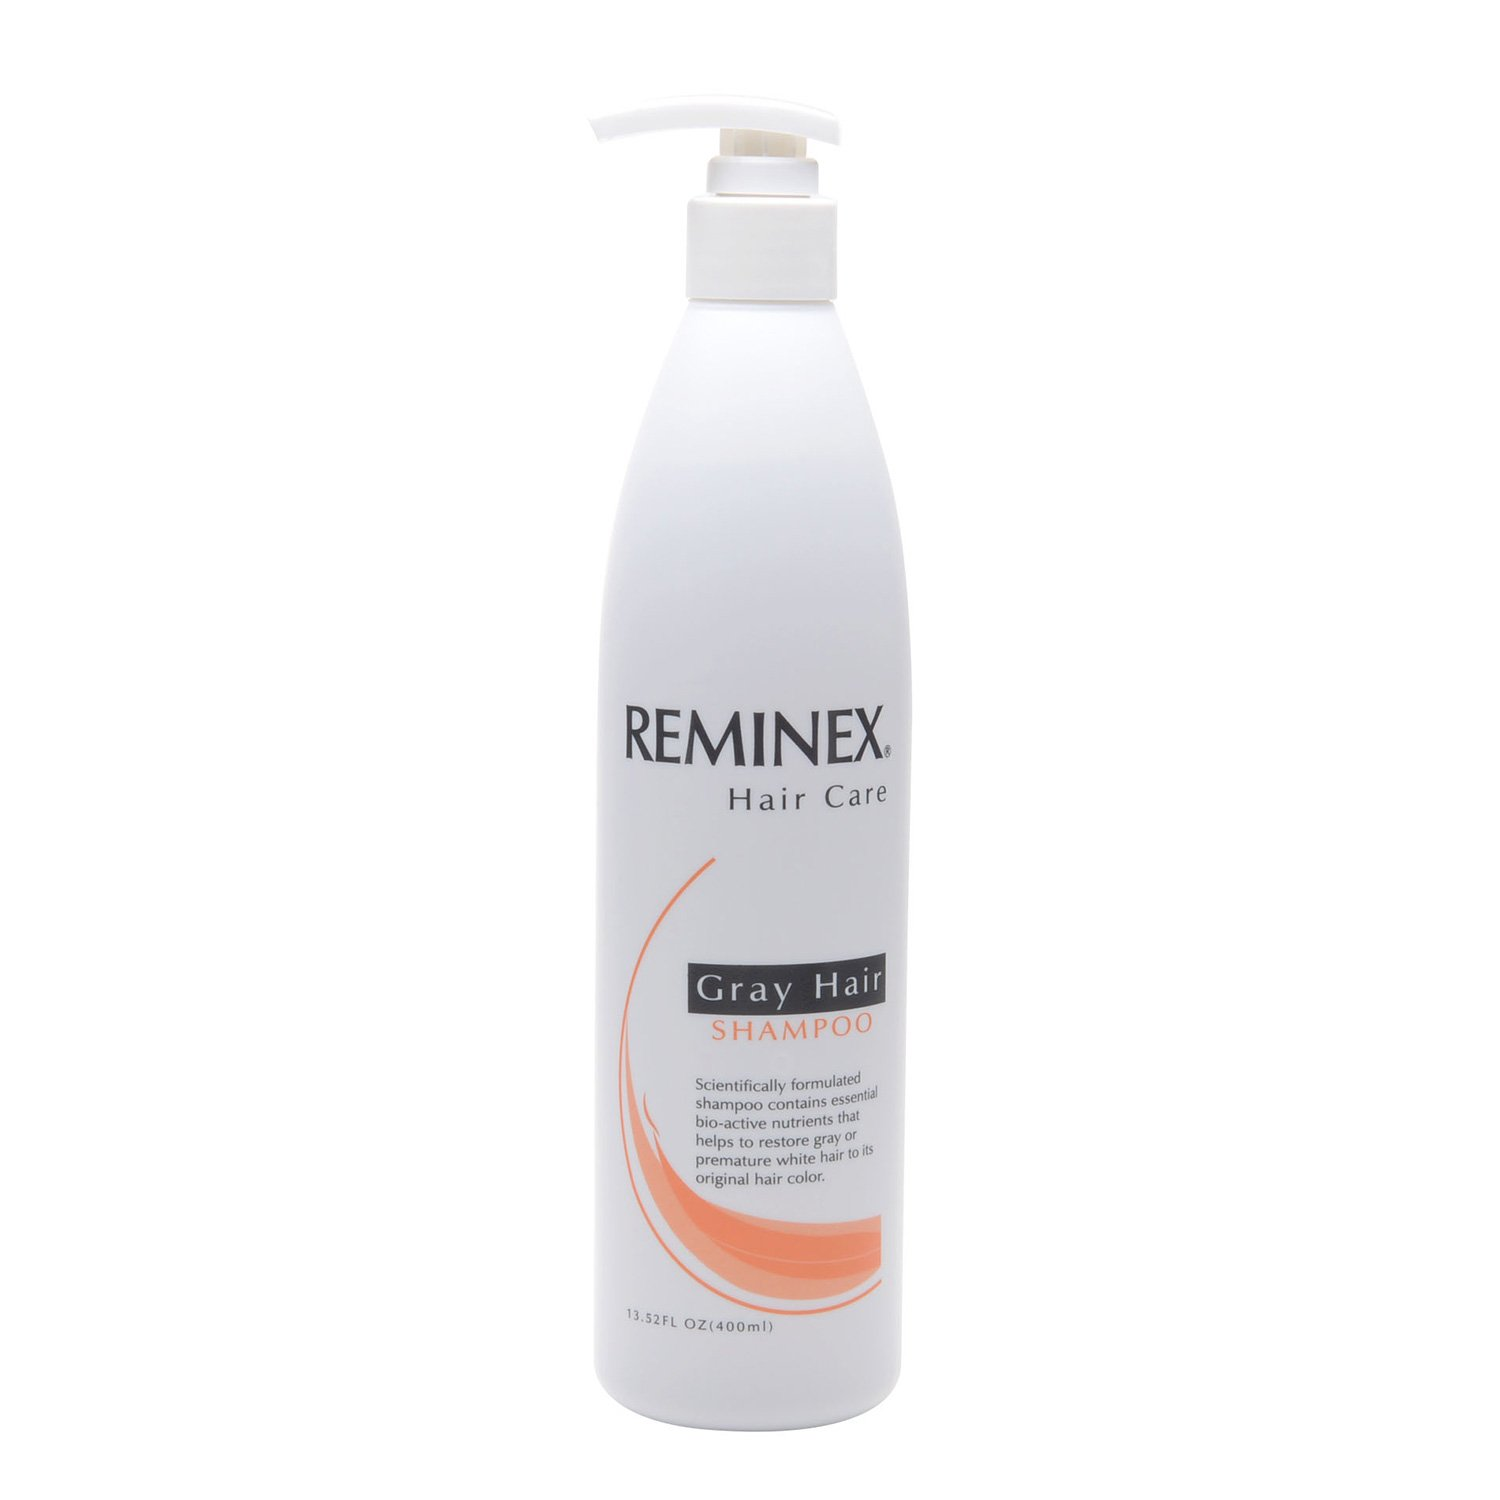 Reminex Hair Care, Gray Hair Shampoo To Help to Restore Gray Hair Back To Its Original Hair Color (Shampoo, 400 mL)